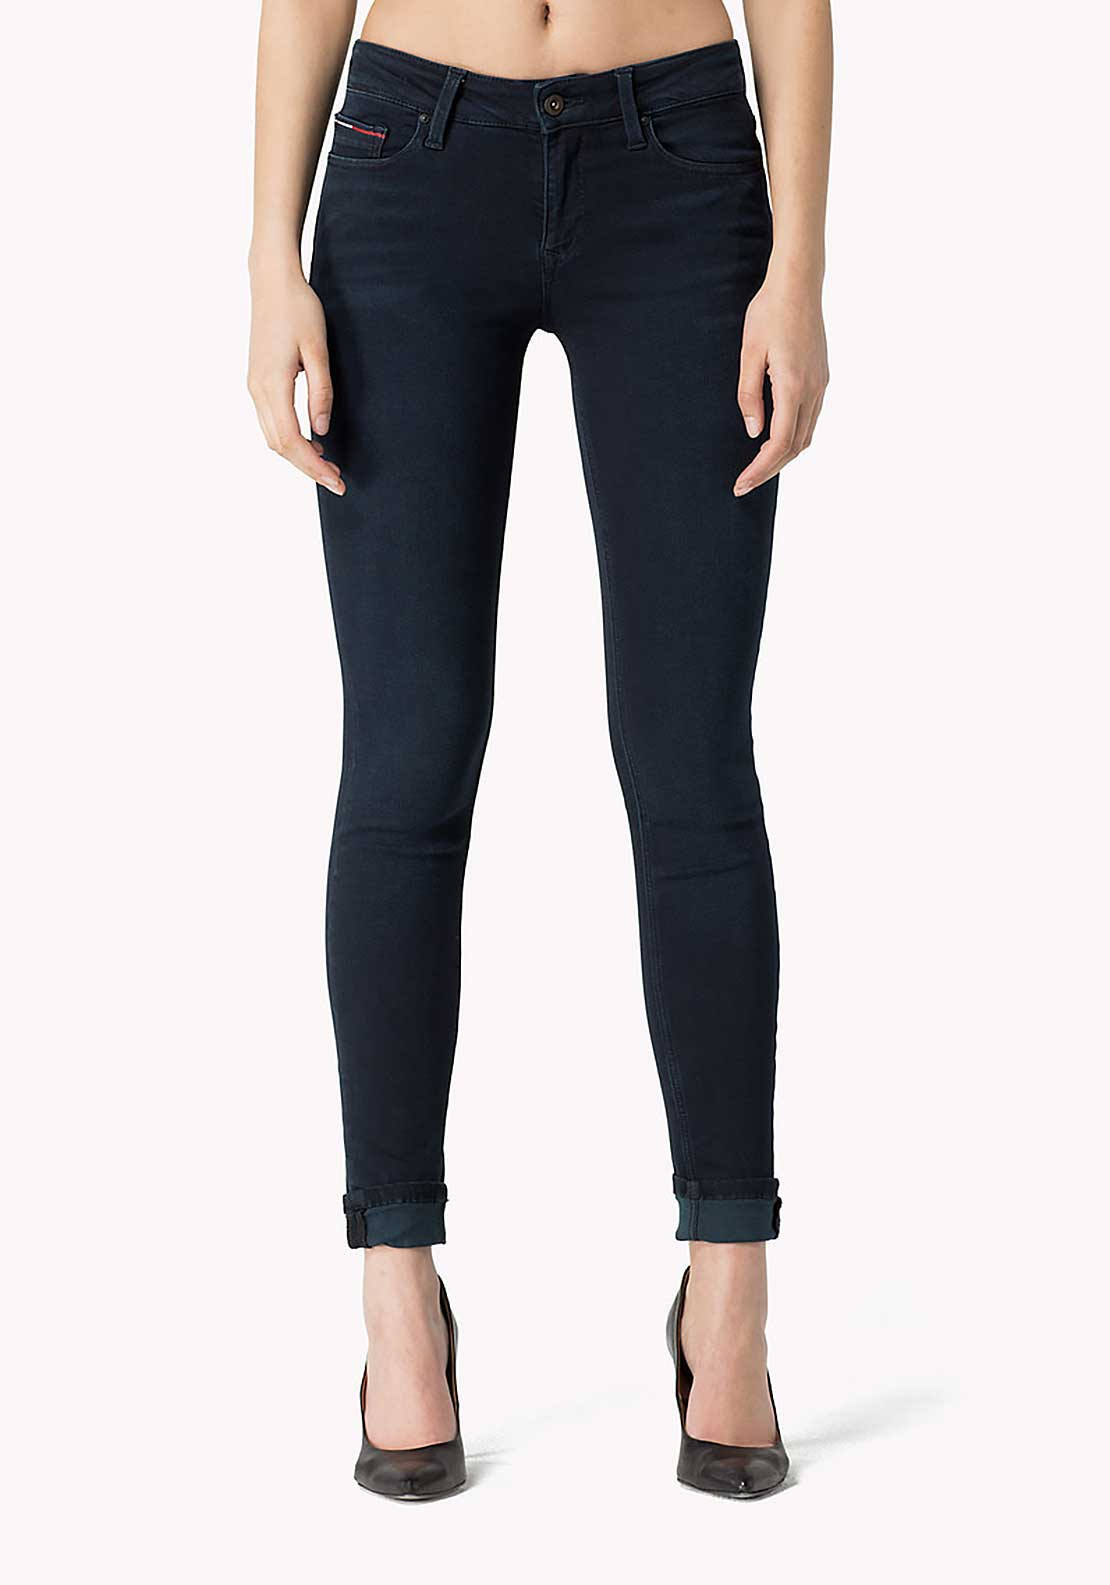 Tommy Hilfiger Womens Nora Mid Rise Skinny Jeans, Navy